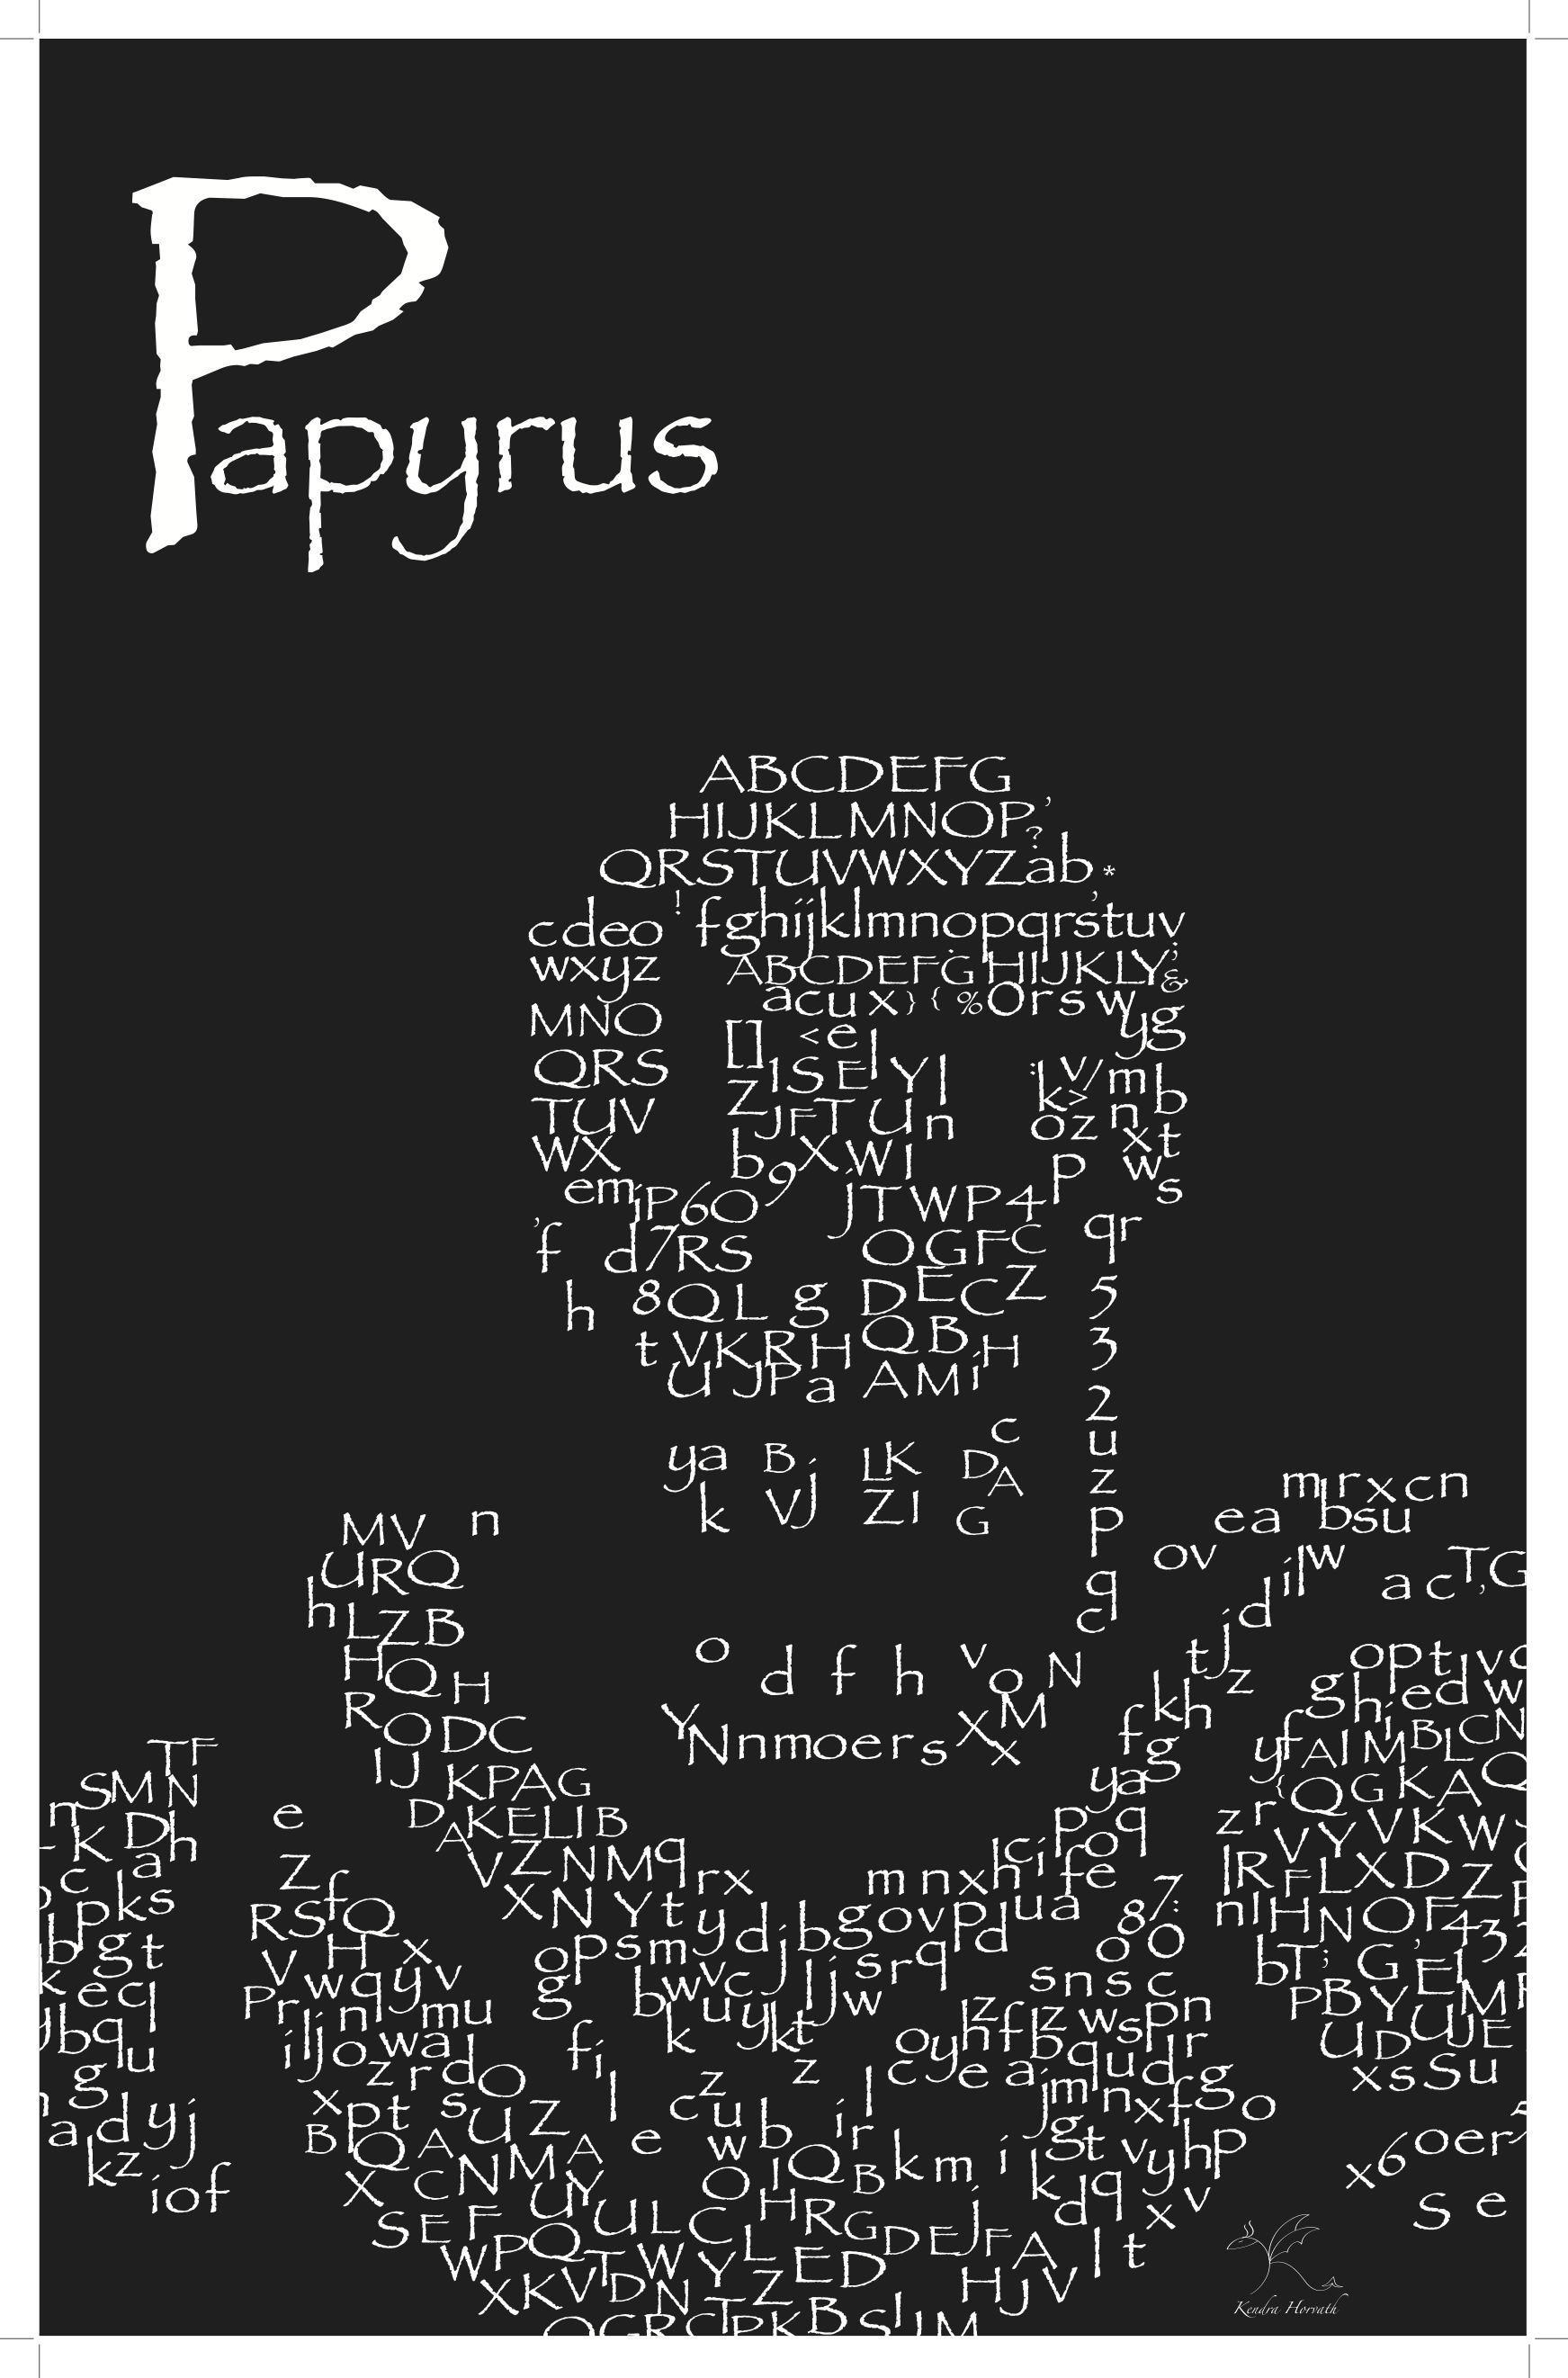 Papyrus poster